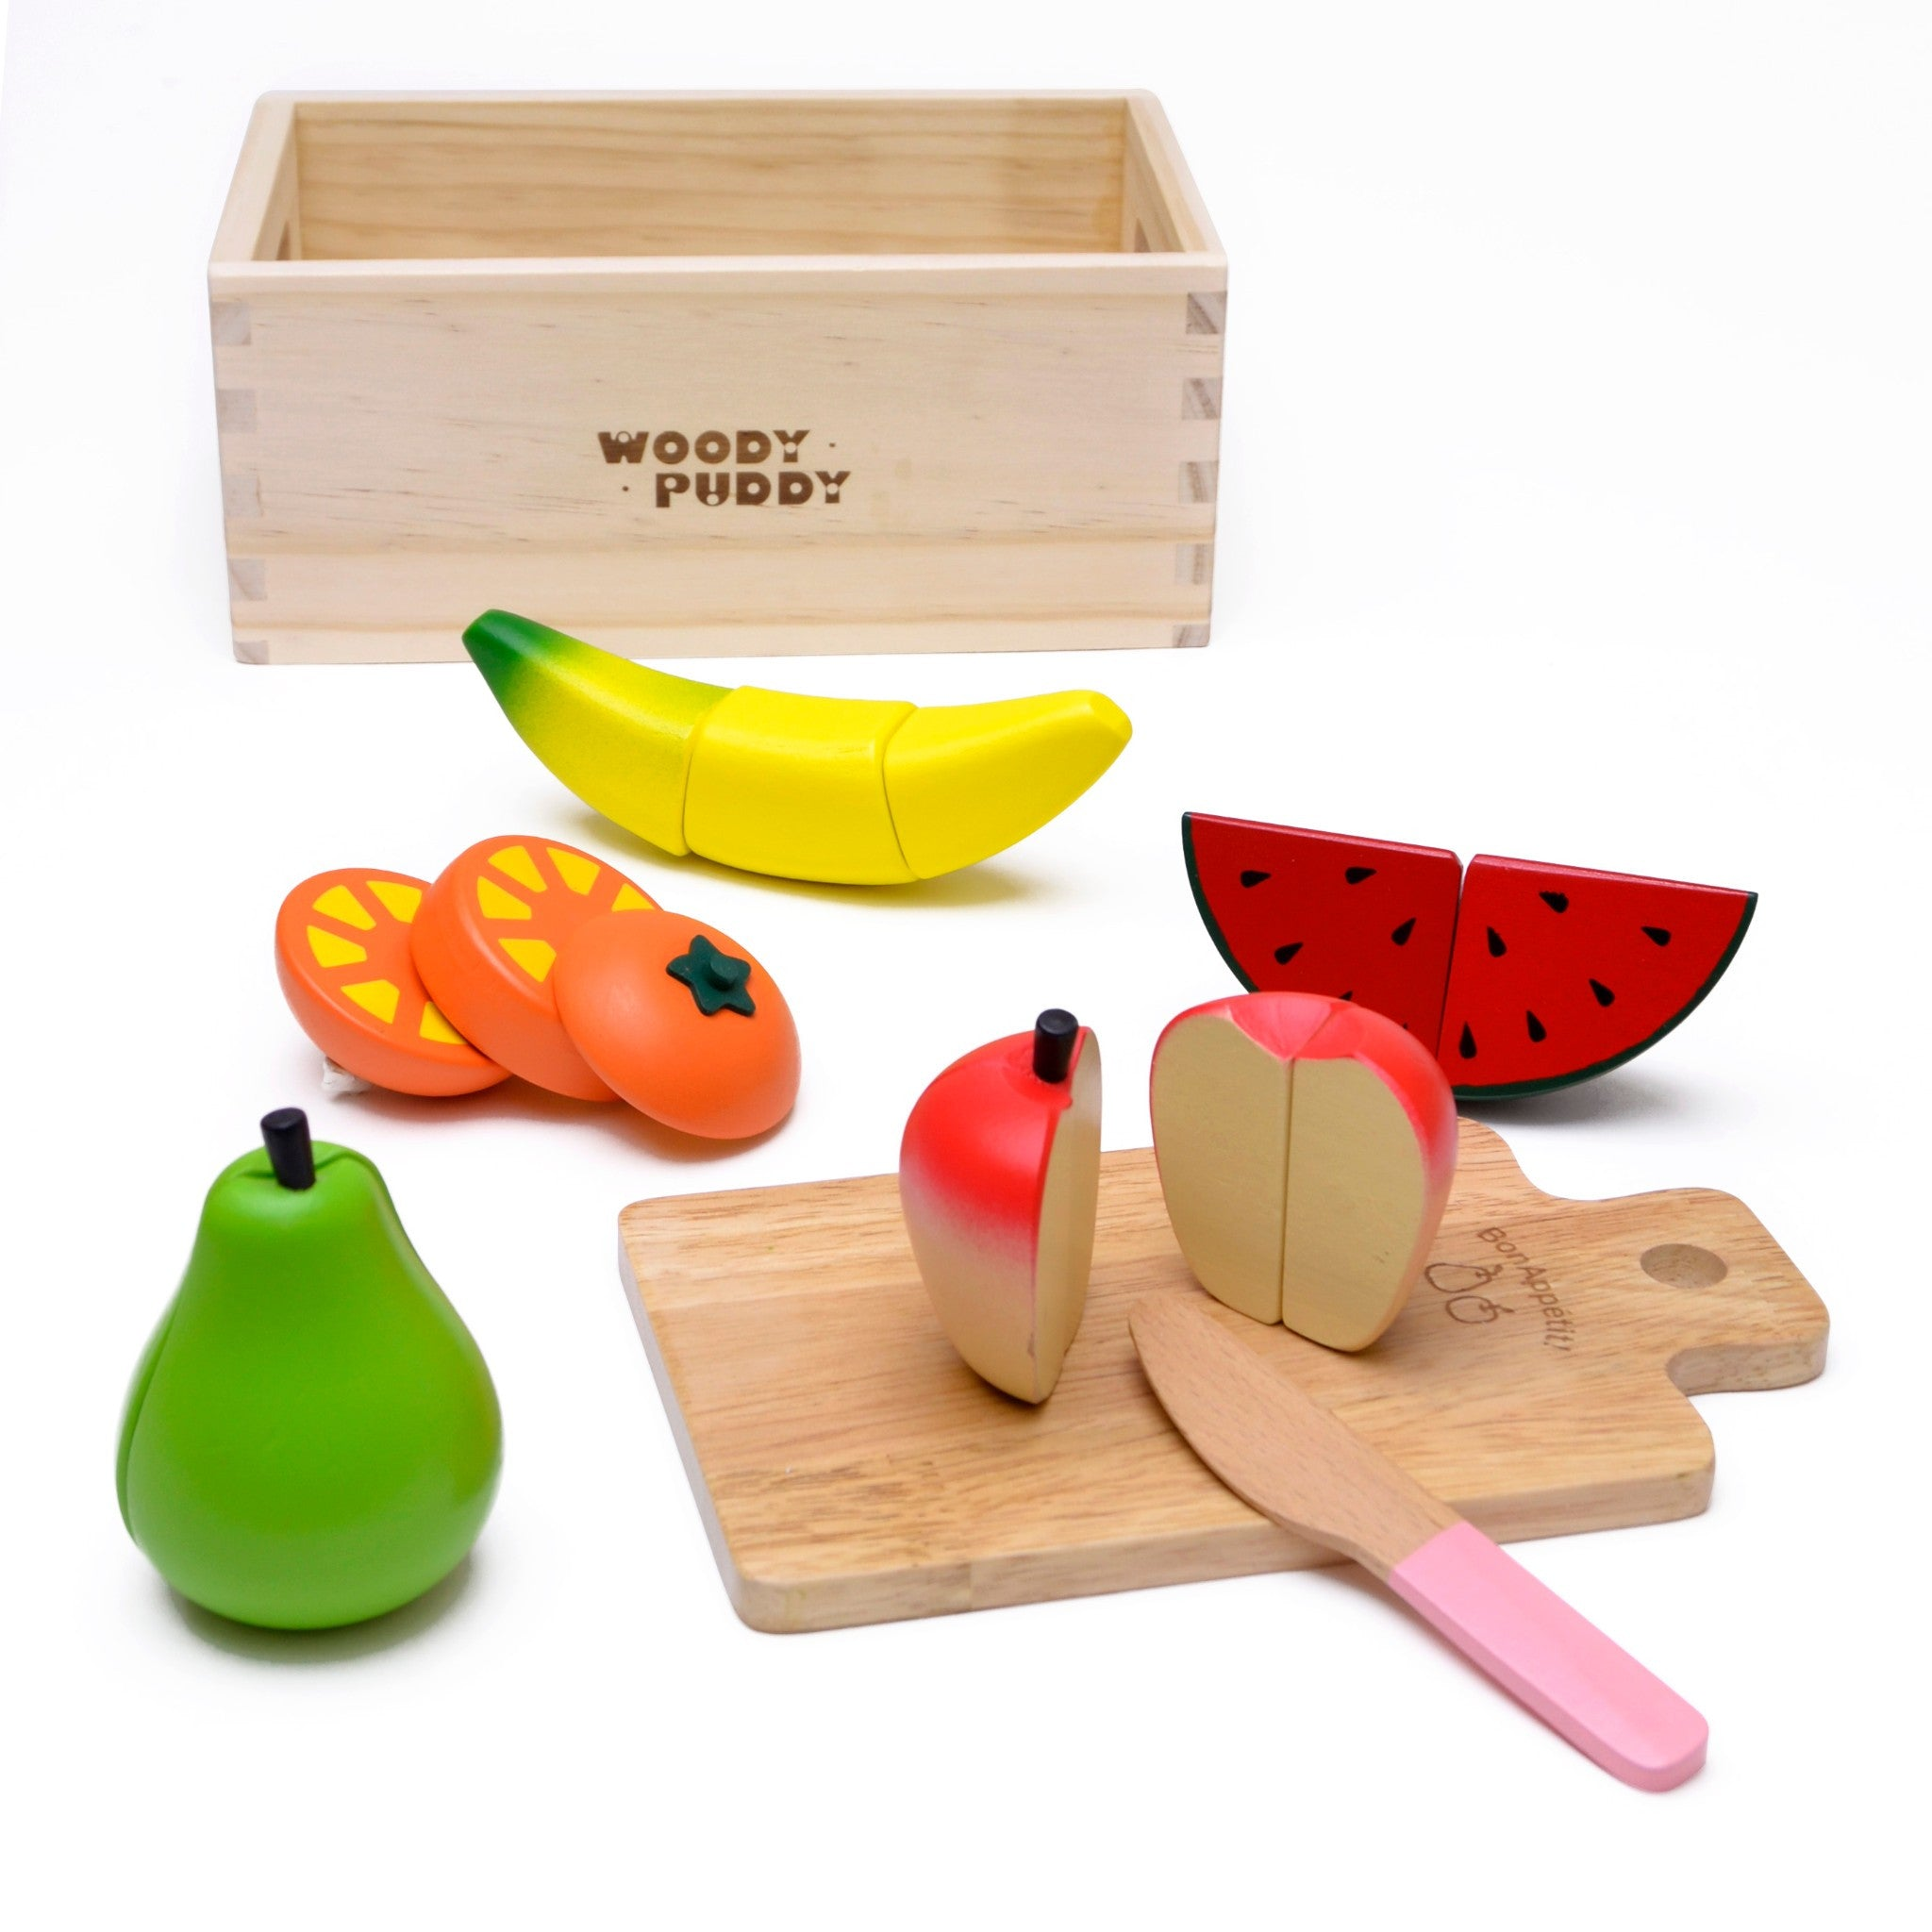 Woody Puddy Sets - Fruit Set U05-0009 by Woody Puddy